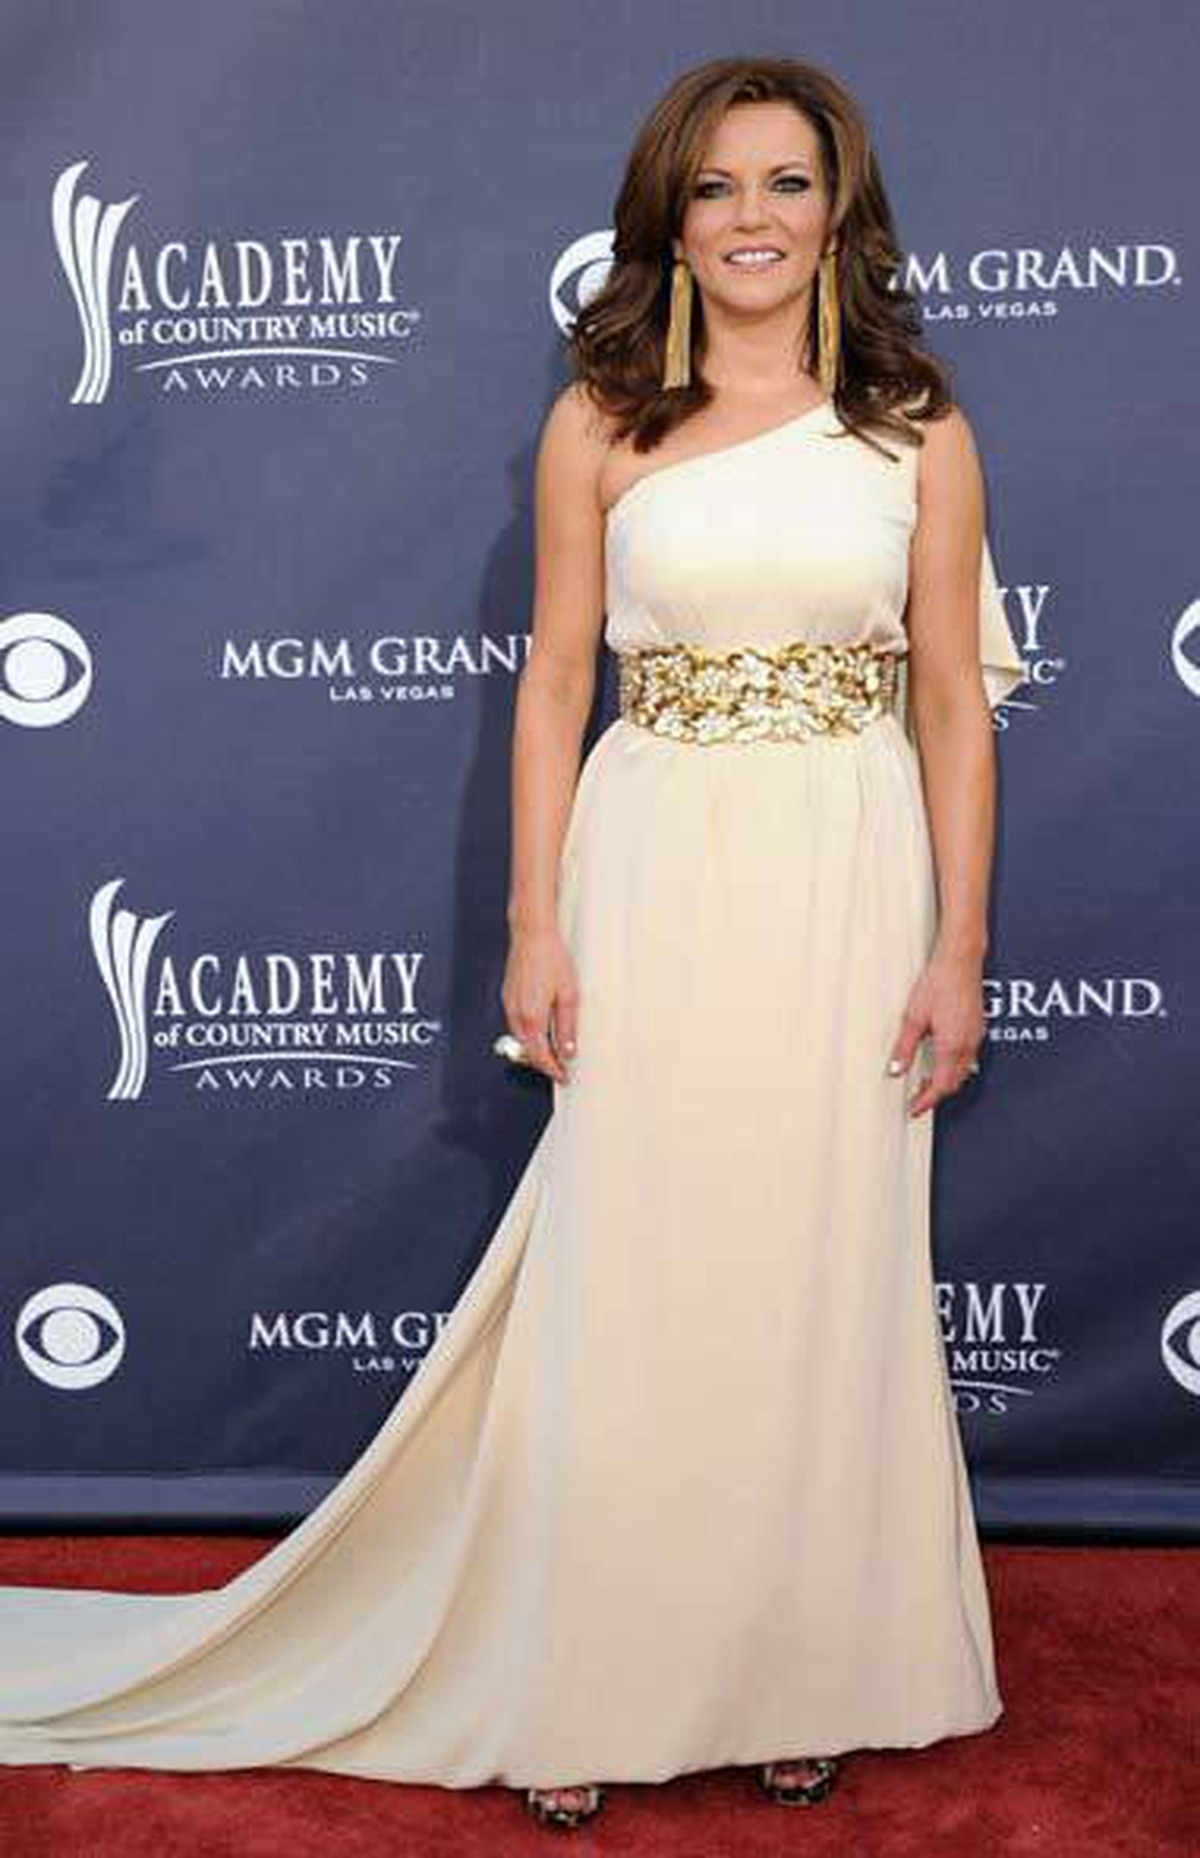 Singer Martina McBride wore the kind of gown more associated with Hollywood values than with country music values.